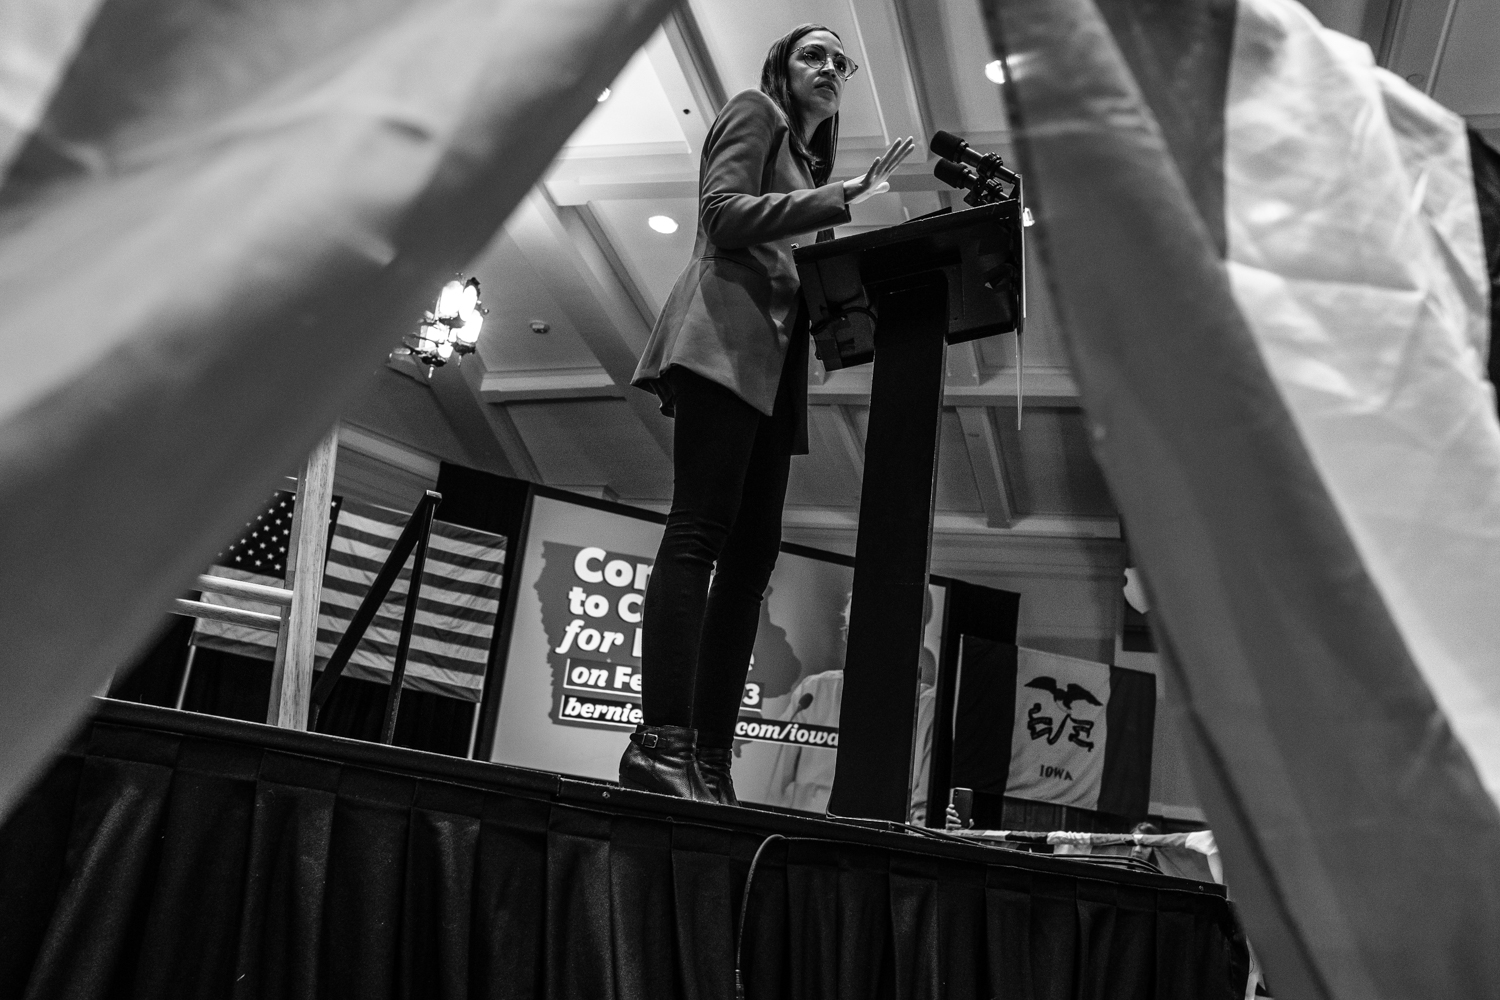 Representative Alexandria Ocasio-Cortez, D-N.Y. speaks to the audience during a campaign event for Senator Bernie Sanders, I-Vt. on Friday, January 24, 2020. Although Sanders could not attend the event, Ocasio-Cortez spoke in his place. The Iowa caucuses, just under two weeks away, will take place on February 3.